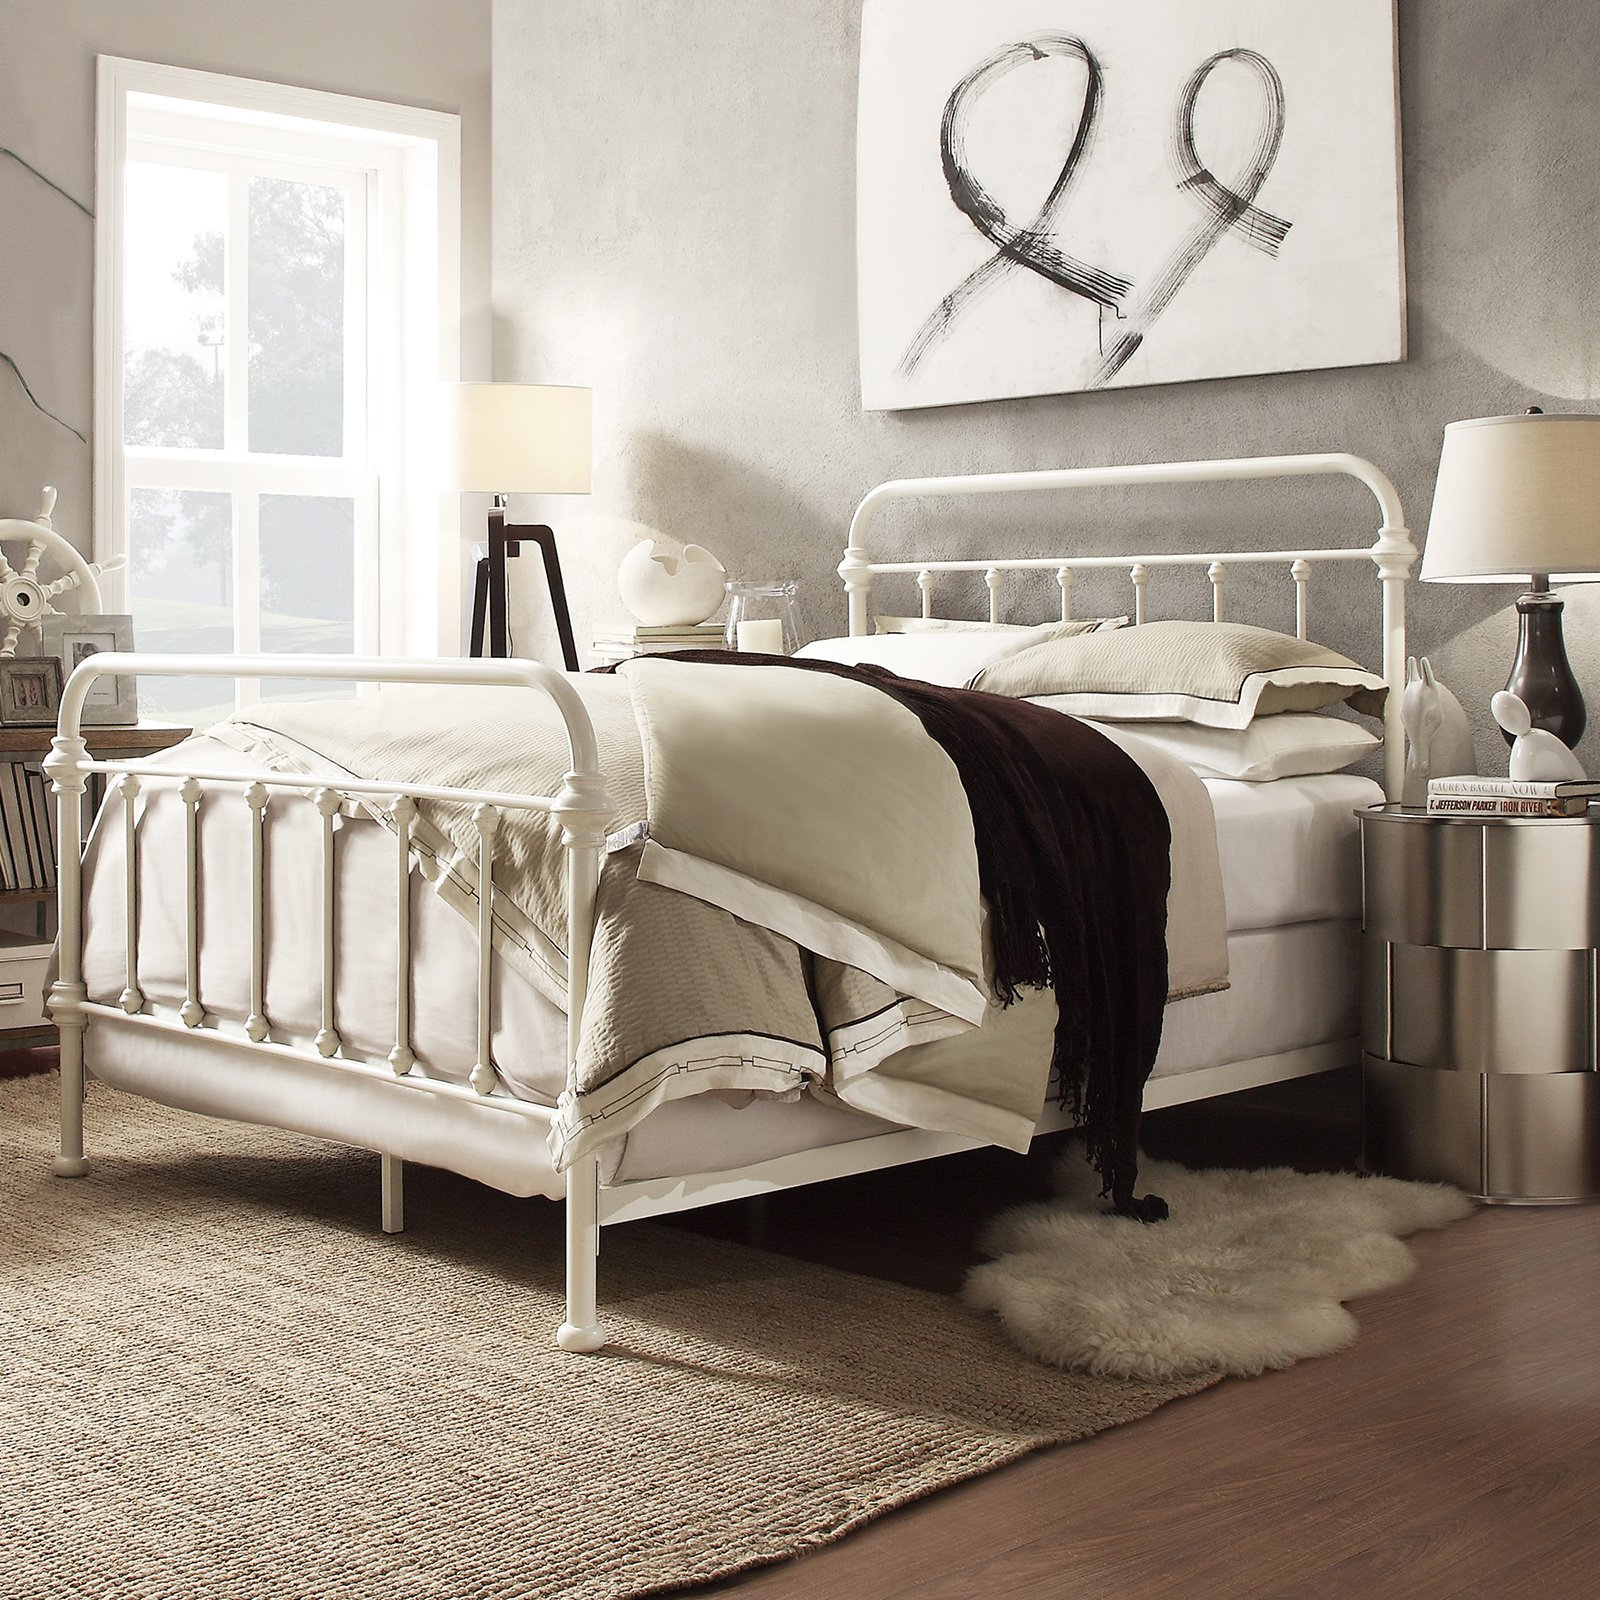 Picture of: Weebluefish Vintage White Metal Bed Frame